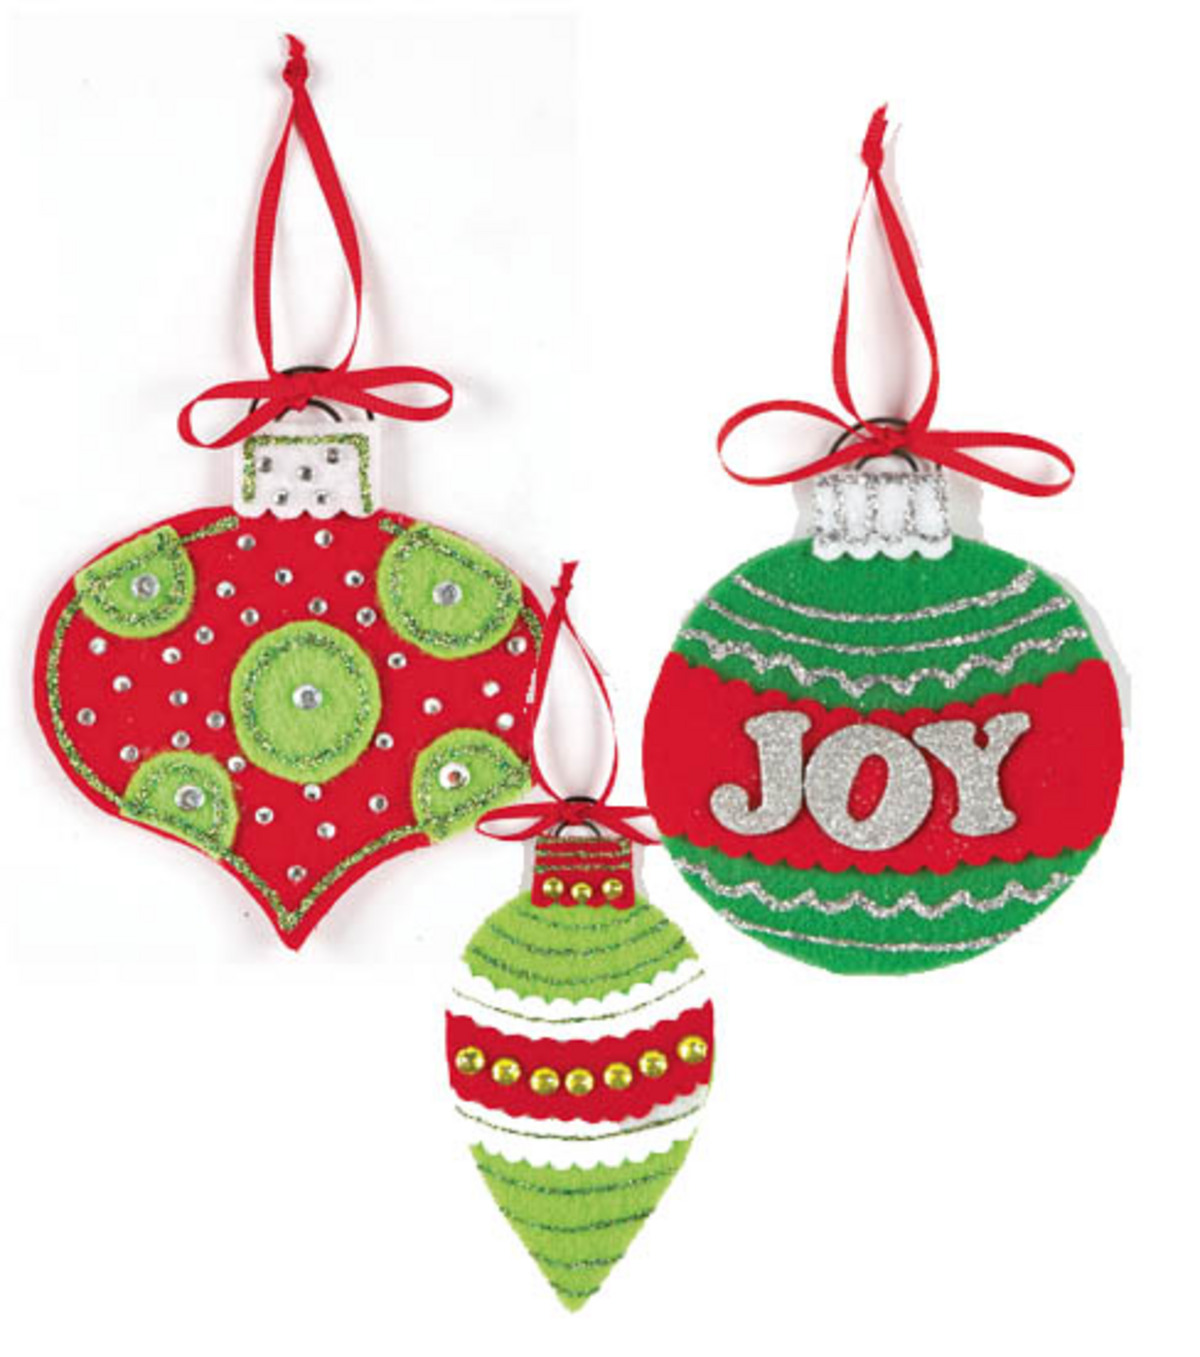 High Quality Felt Ornaments Great Pictures